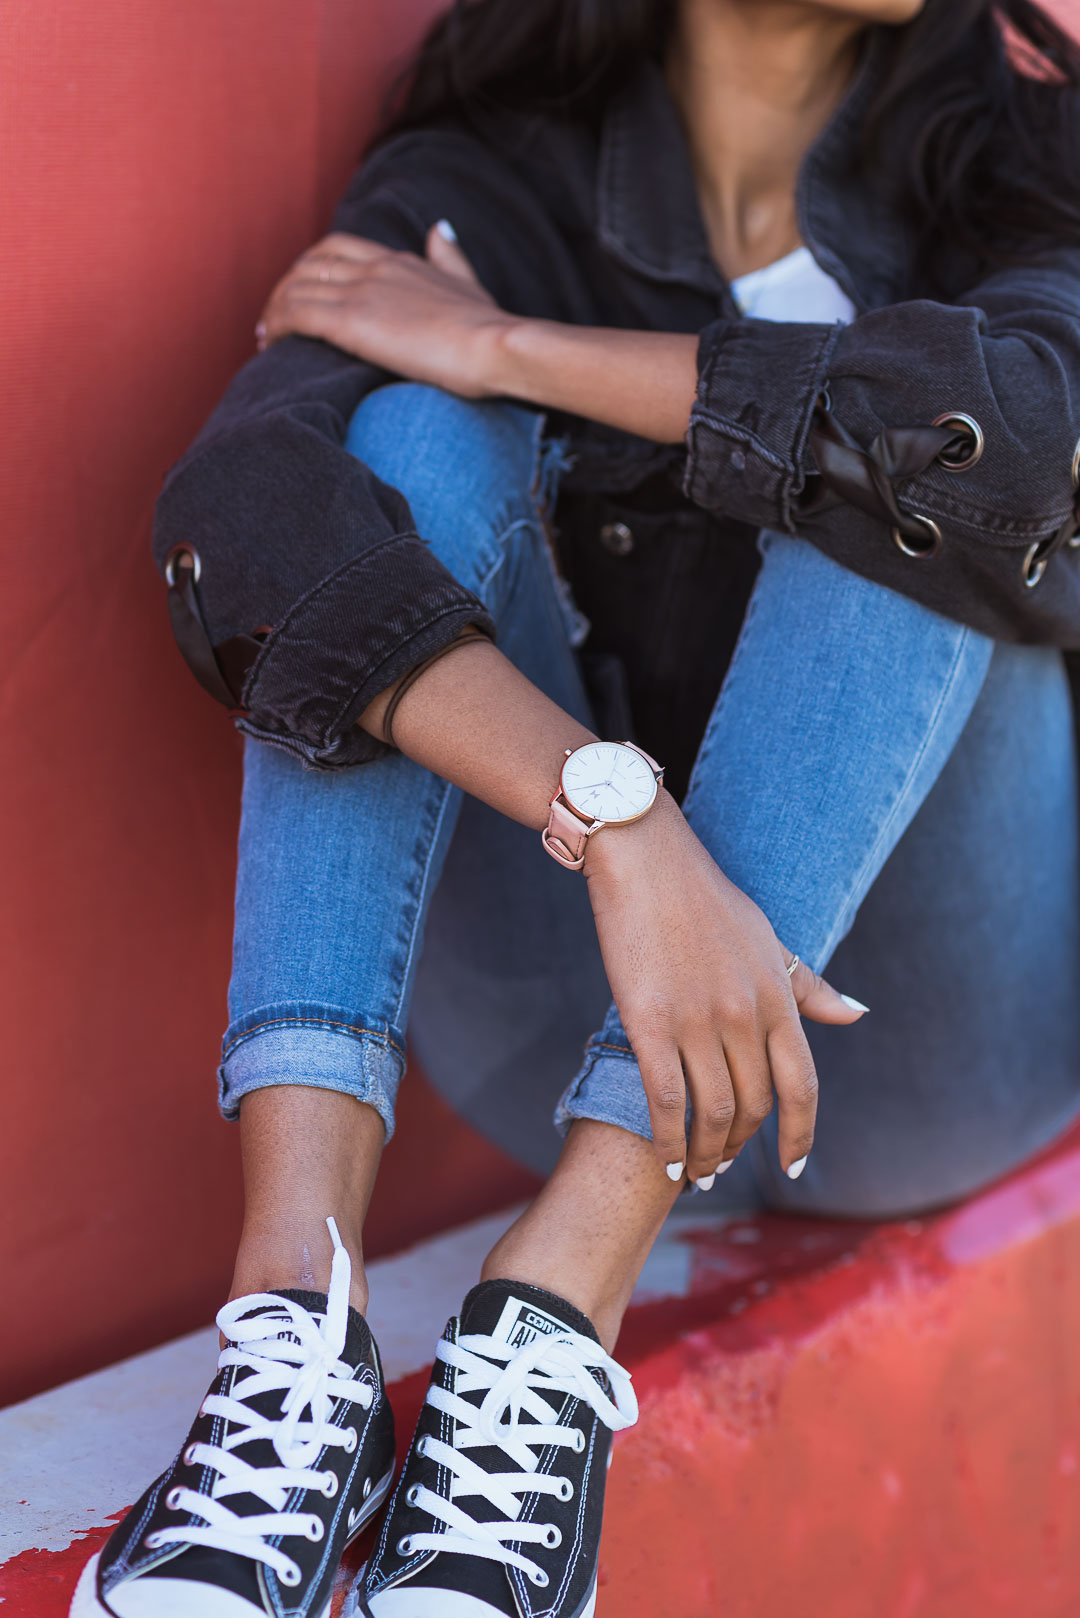 converse outfit sitting down